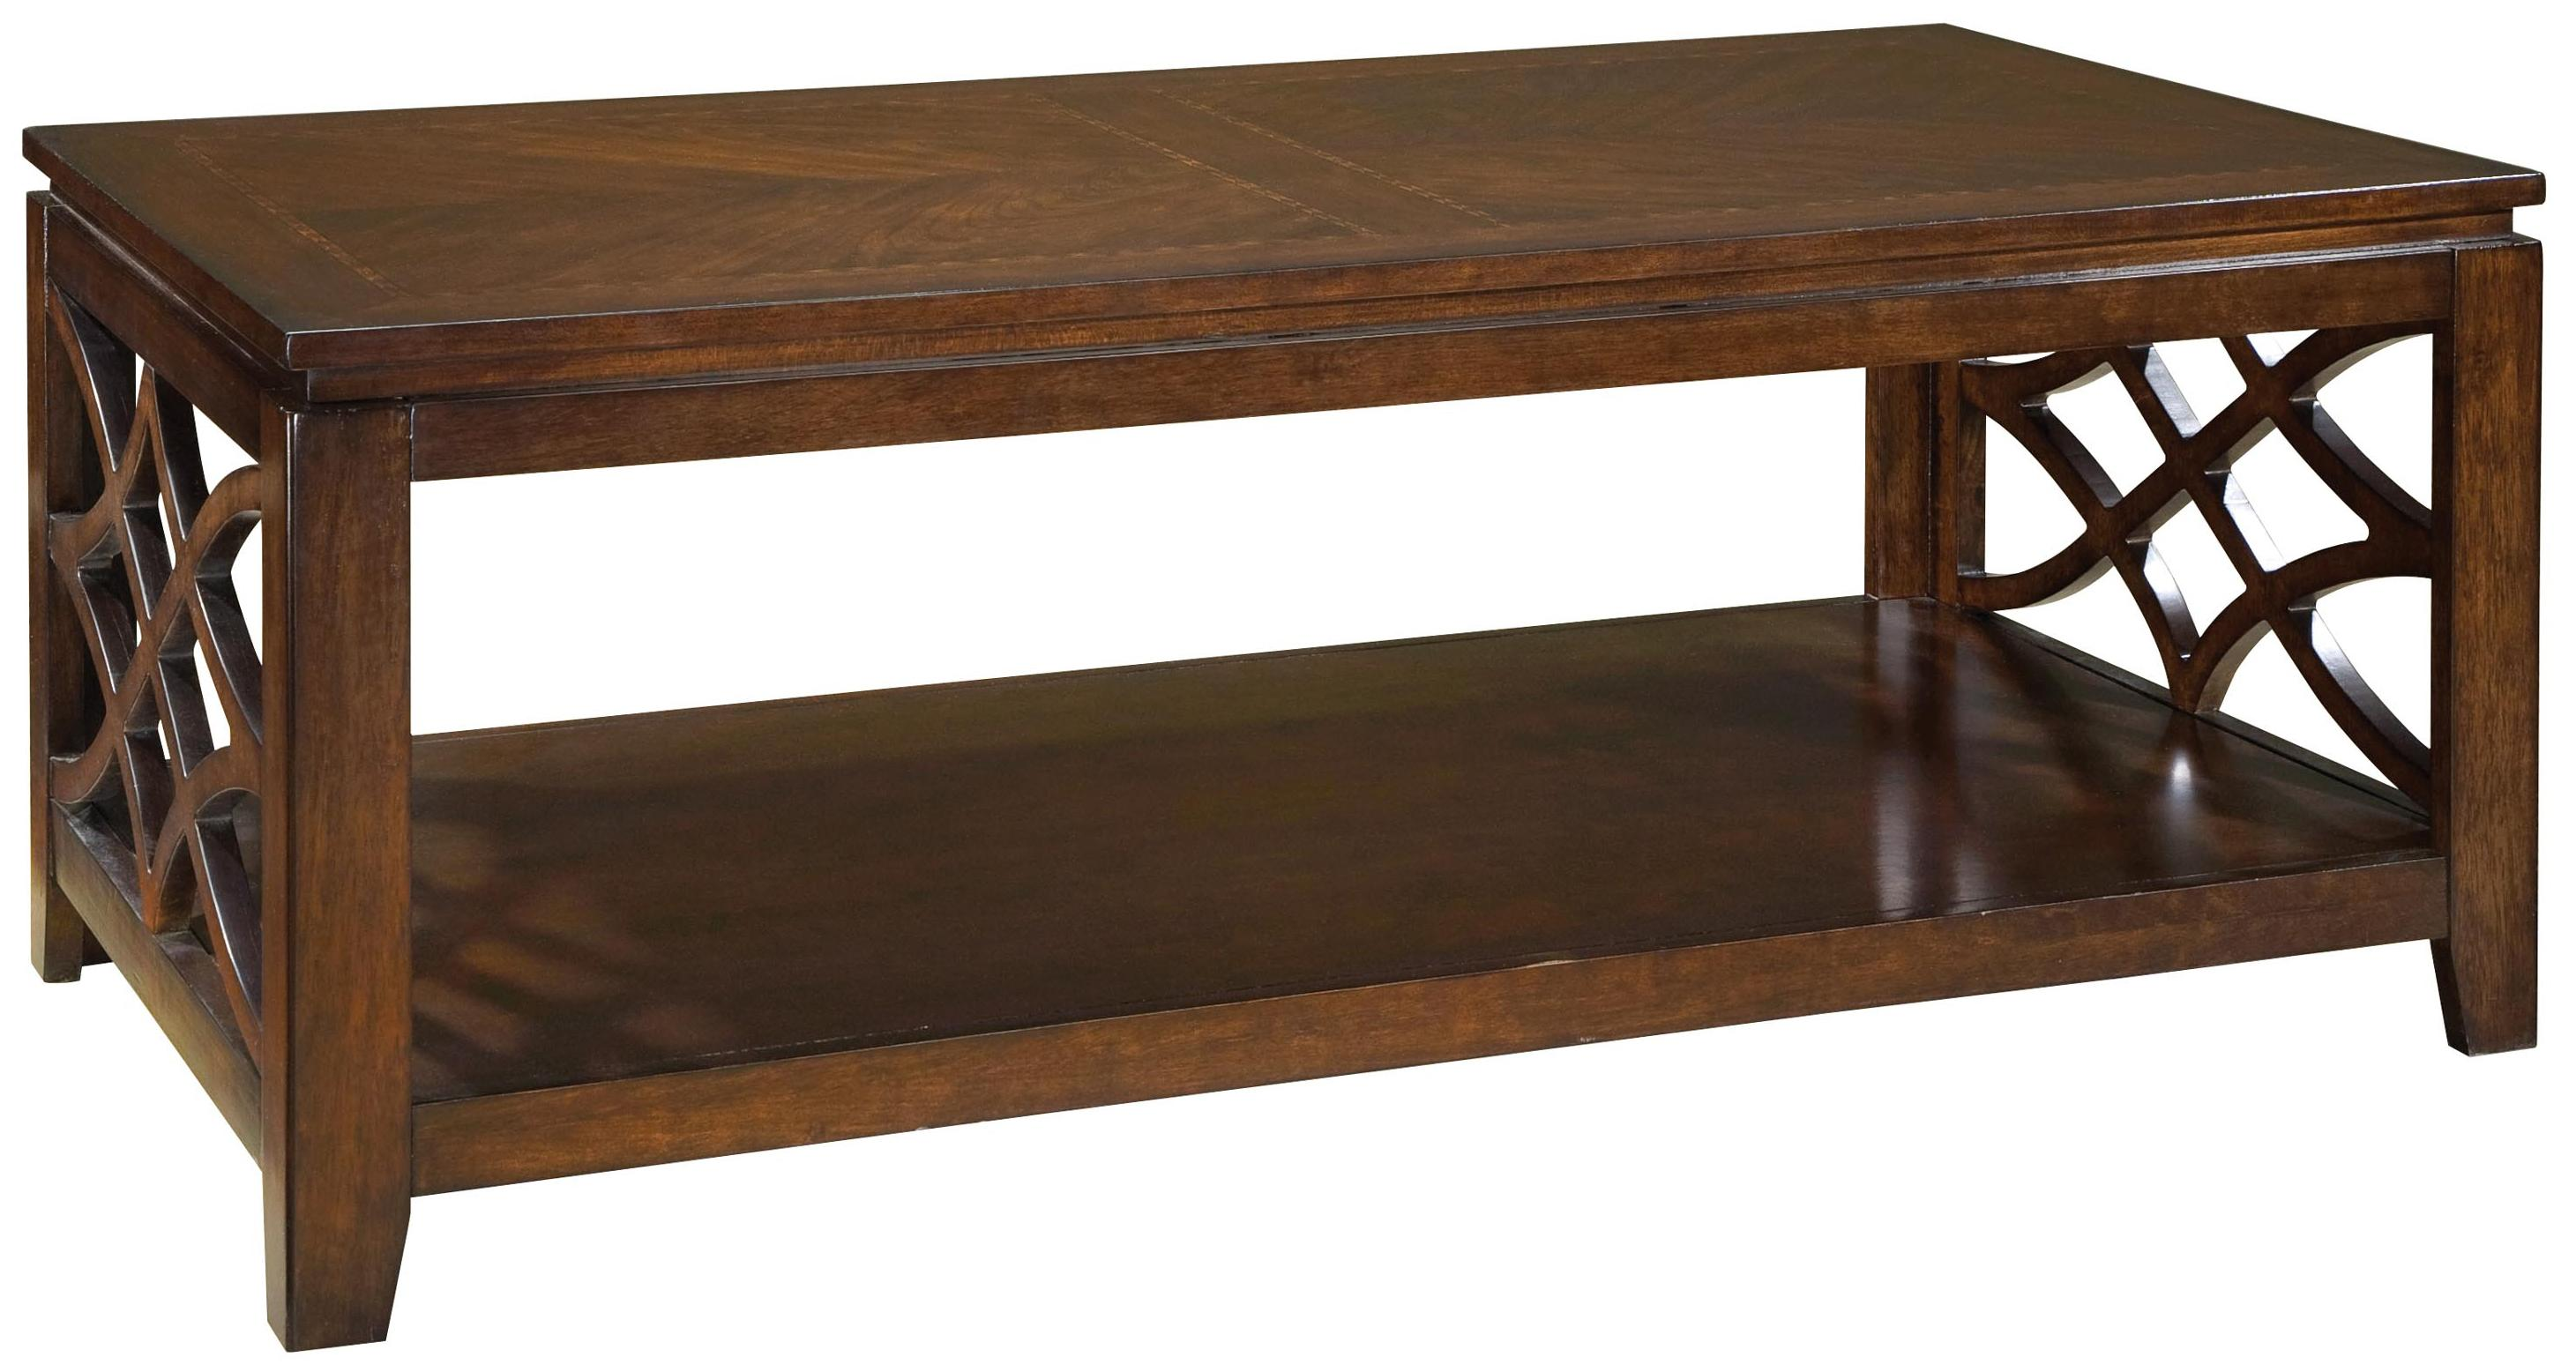 Zenith woodmont 23441 rectangular cocktail table with for Zenith sofa table